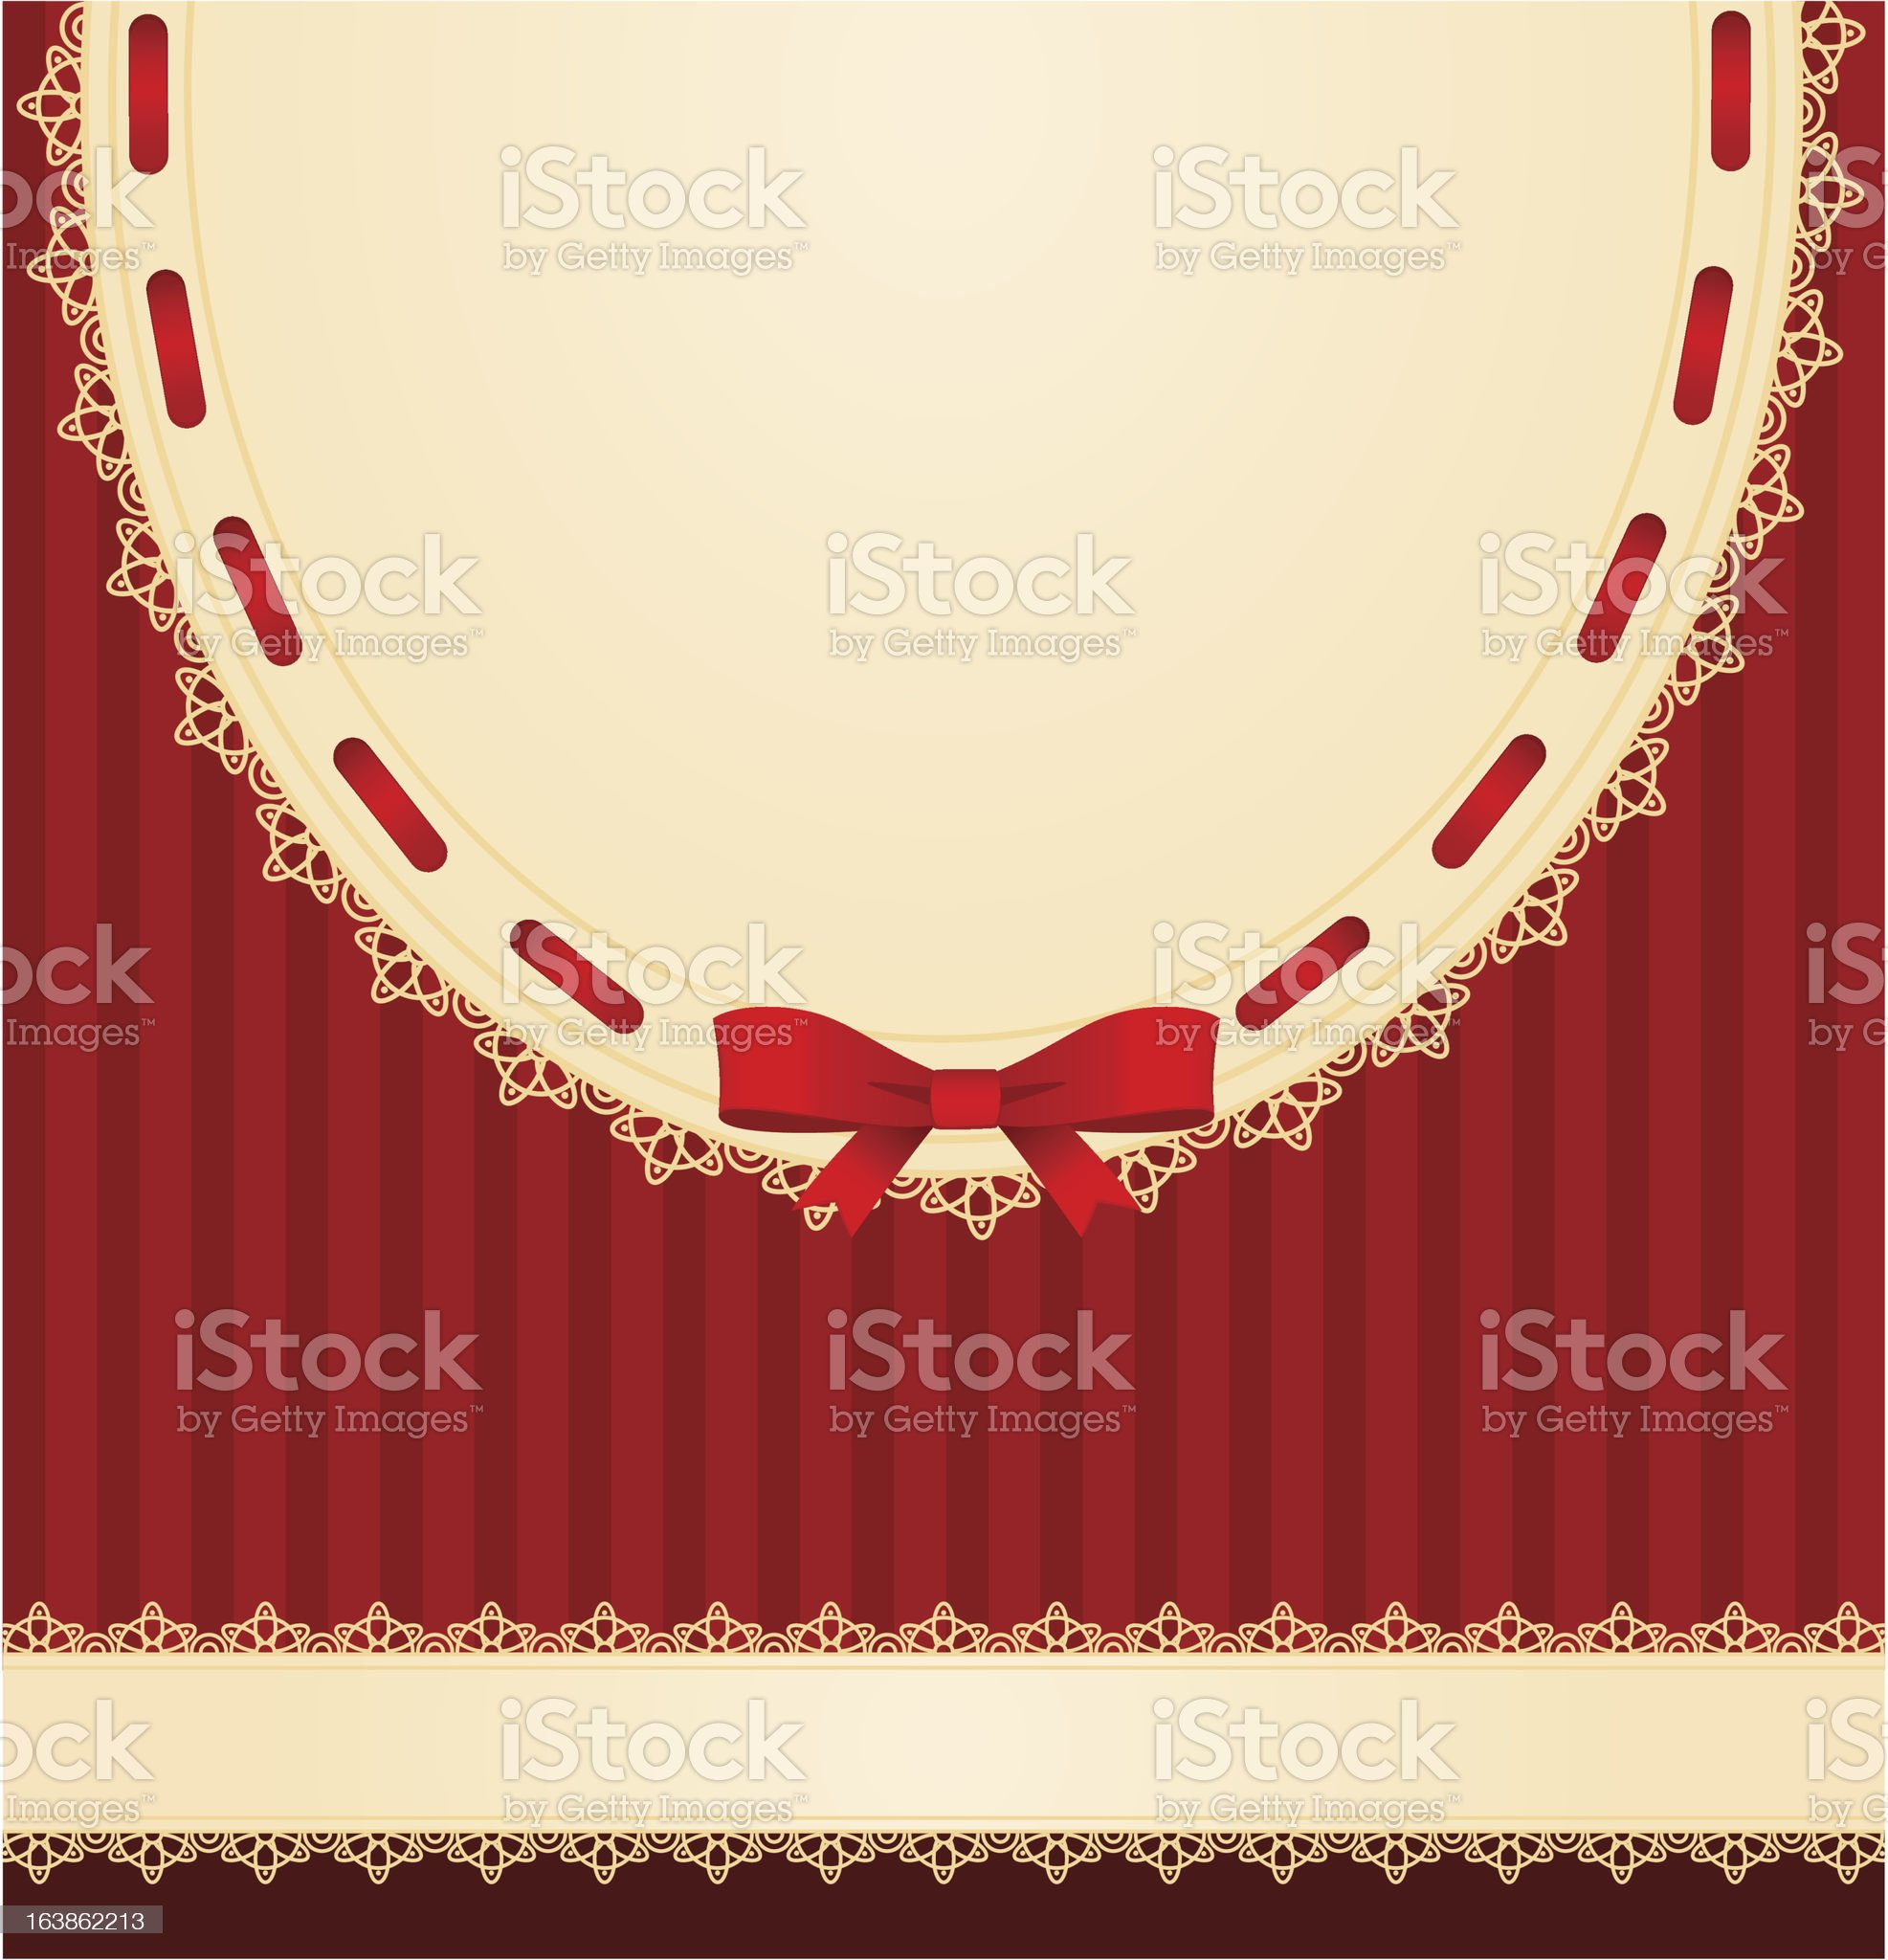 Vector background with lace ornaments and red bow royalty-free stock vector art